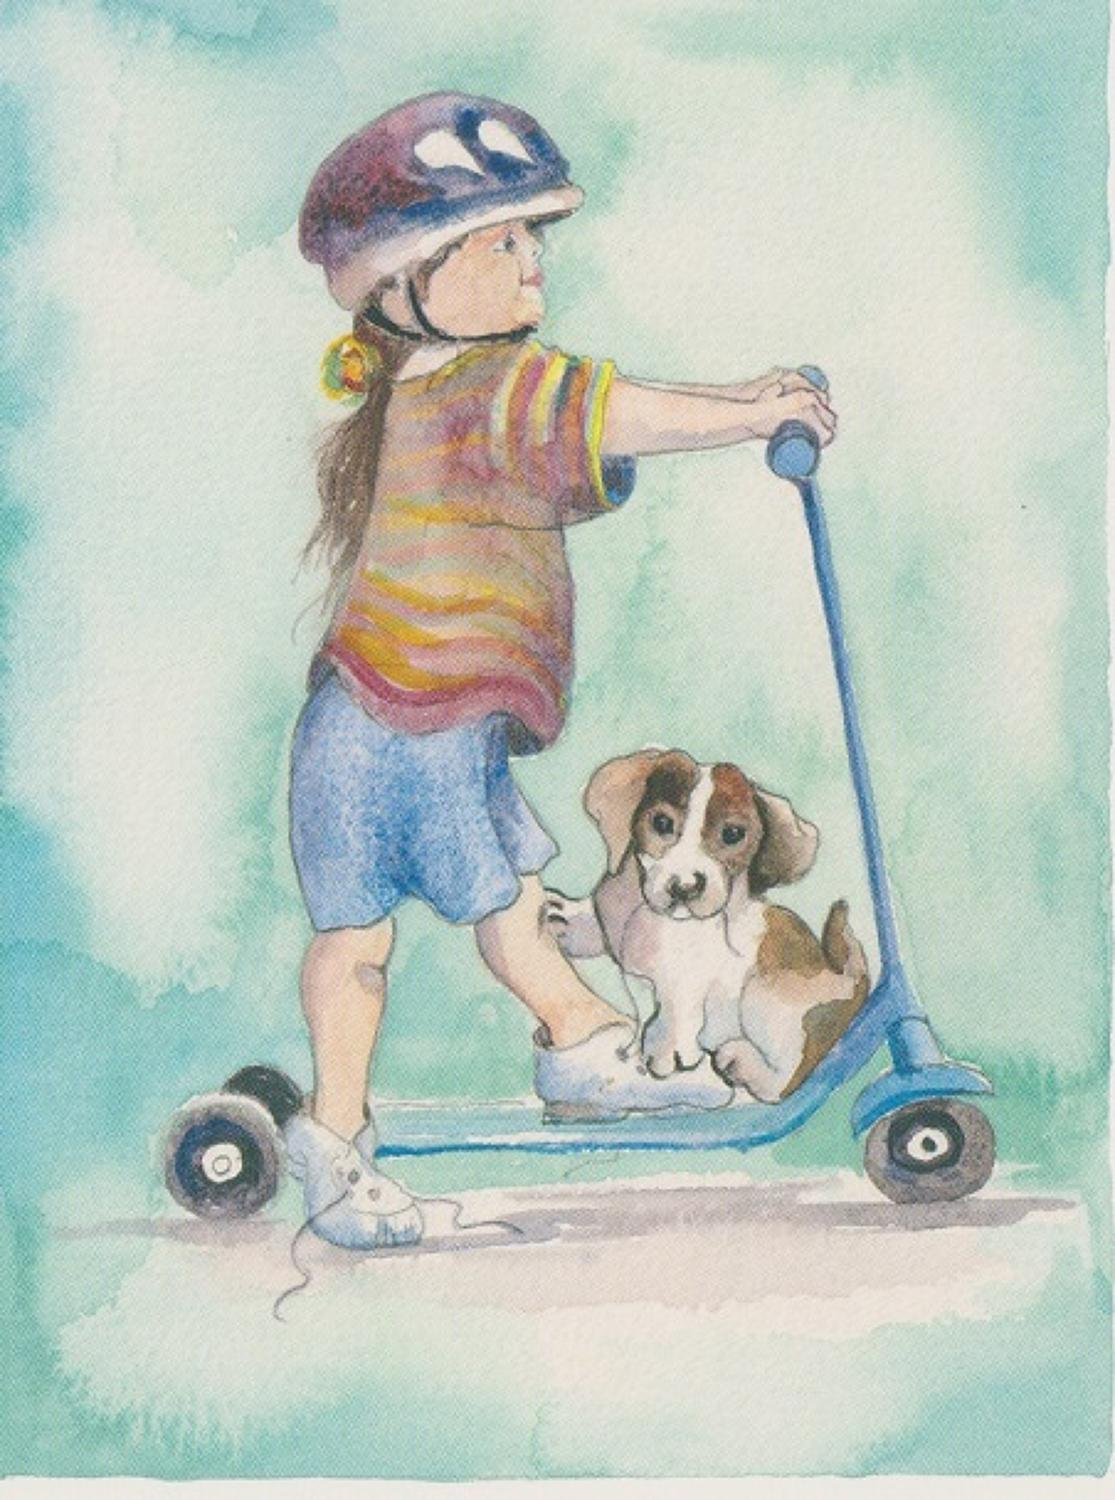 Girl on scooter with puppy